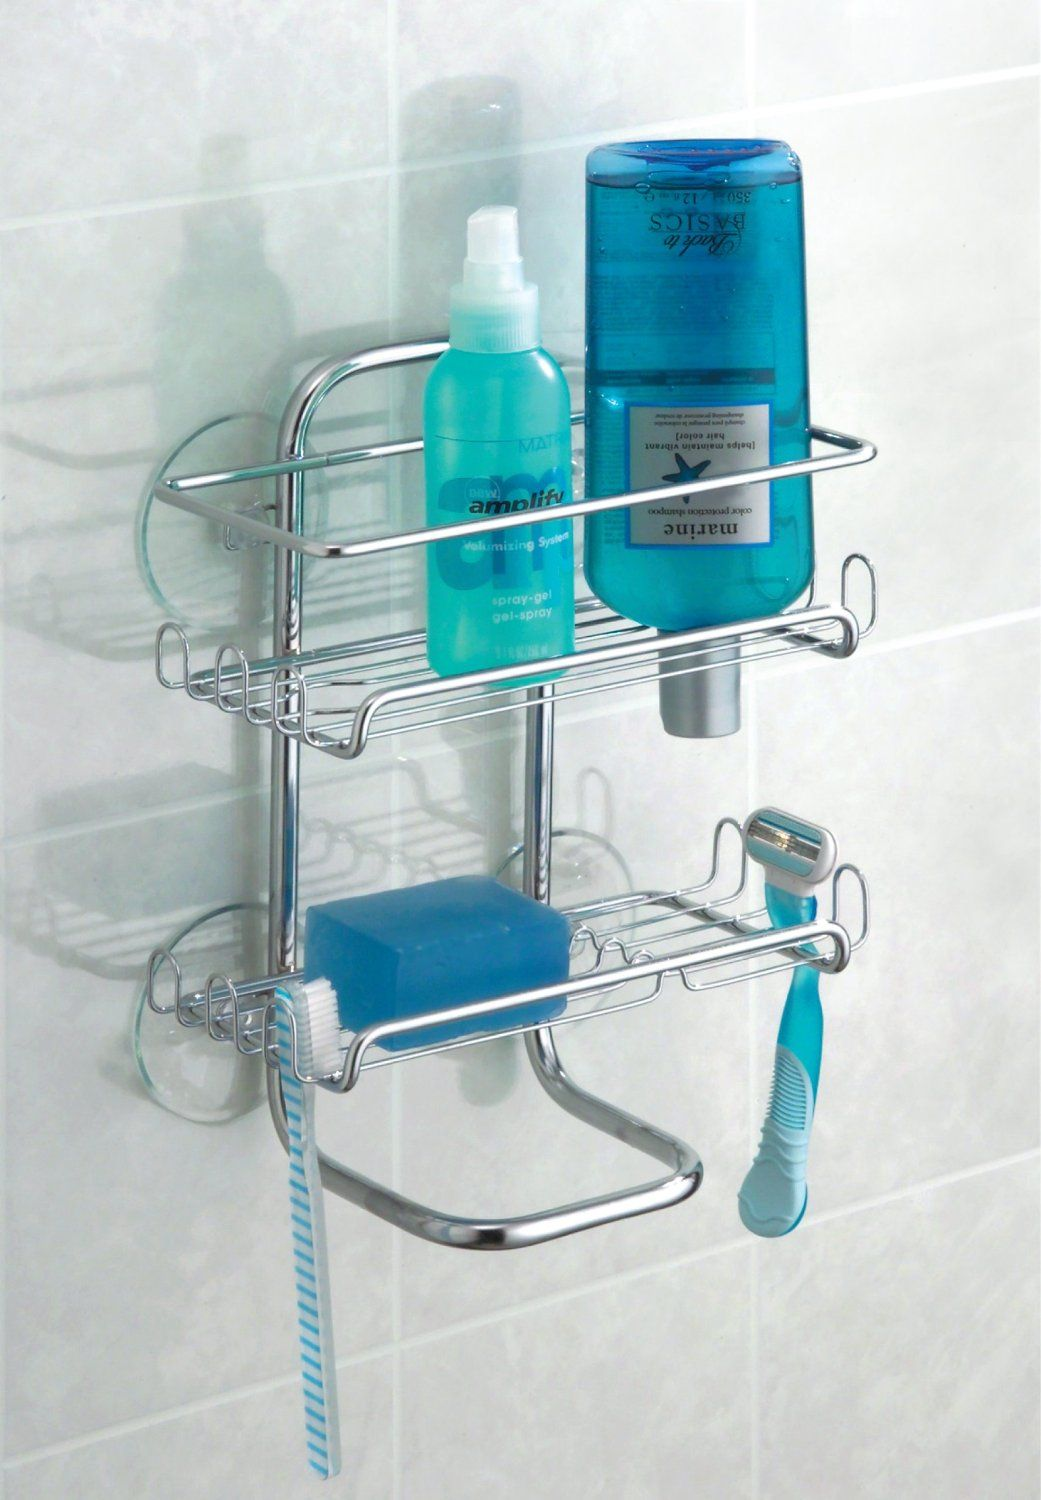 Amazon.com: InterDesign Classico Suction Shower Shelves, Chrome ...